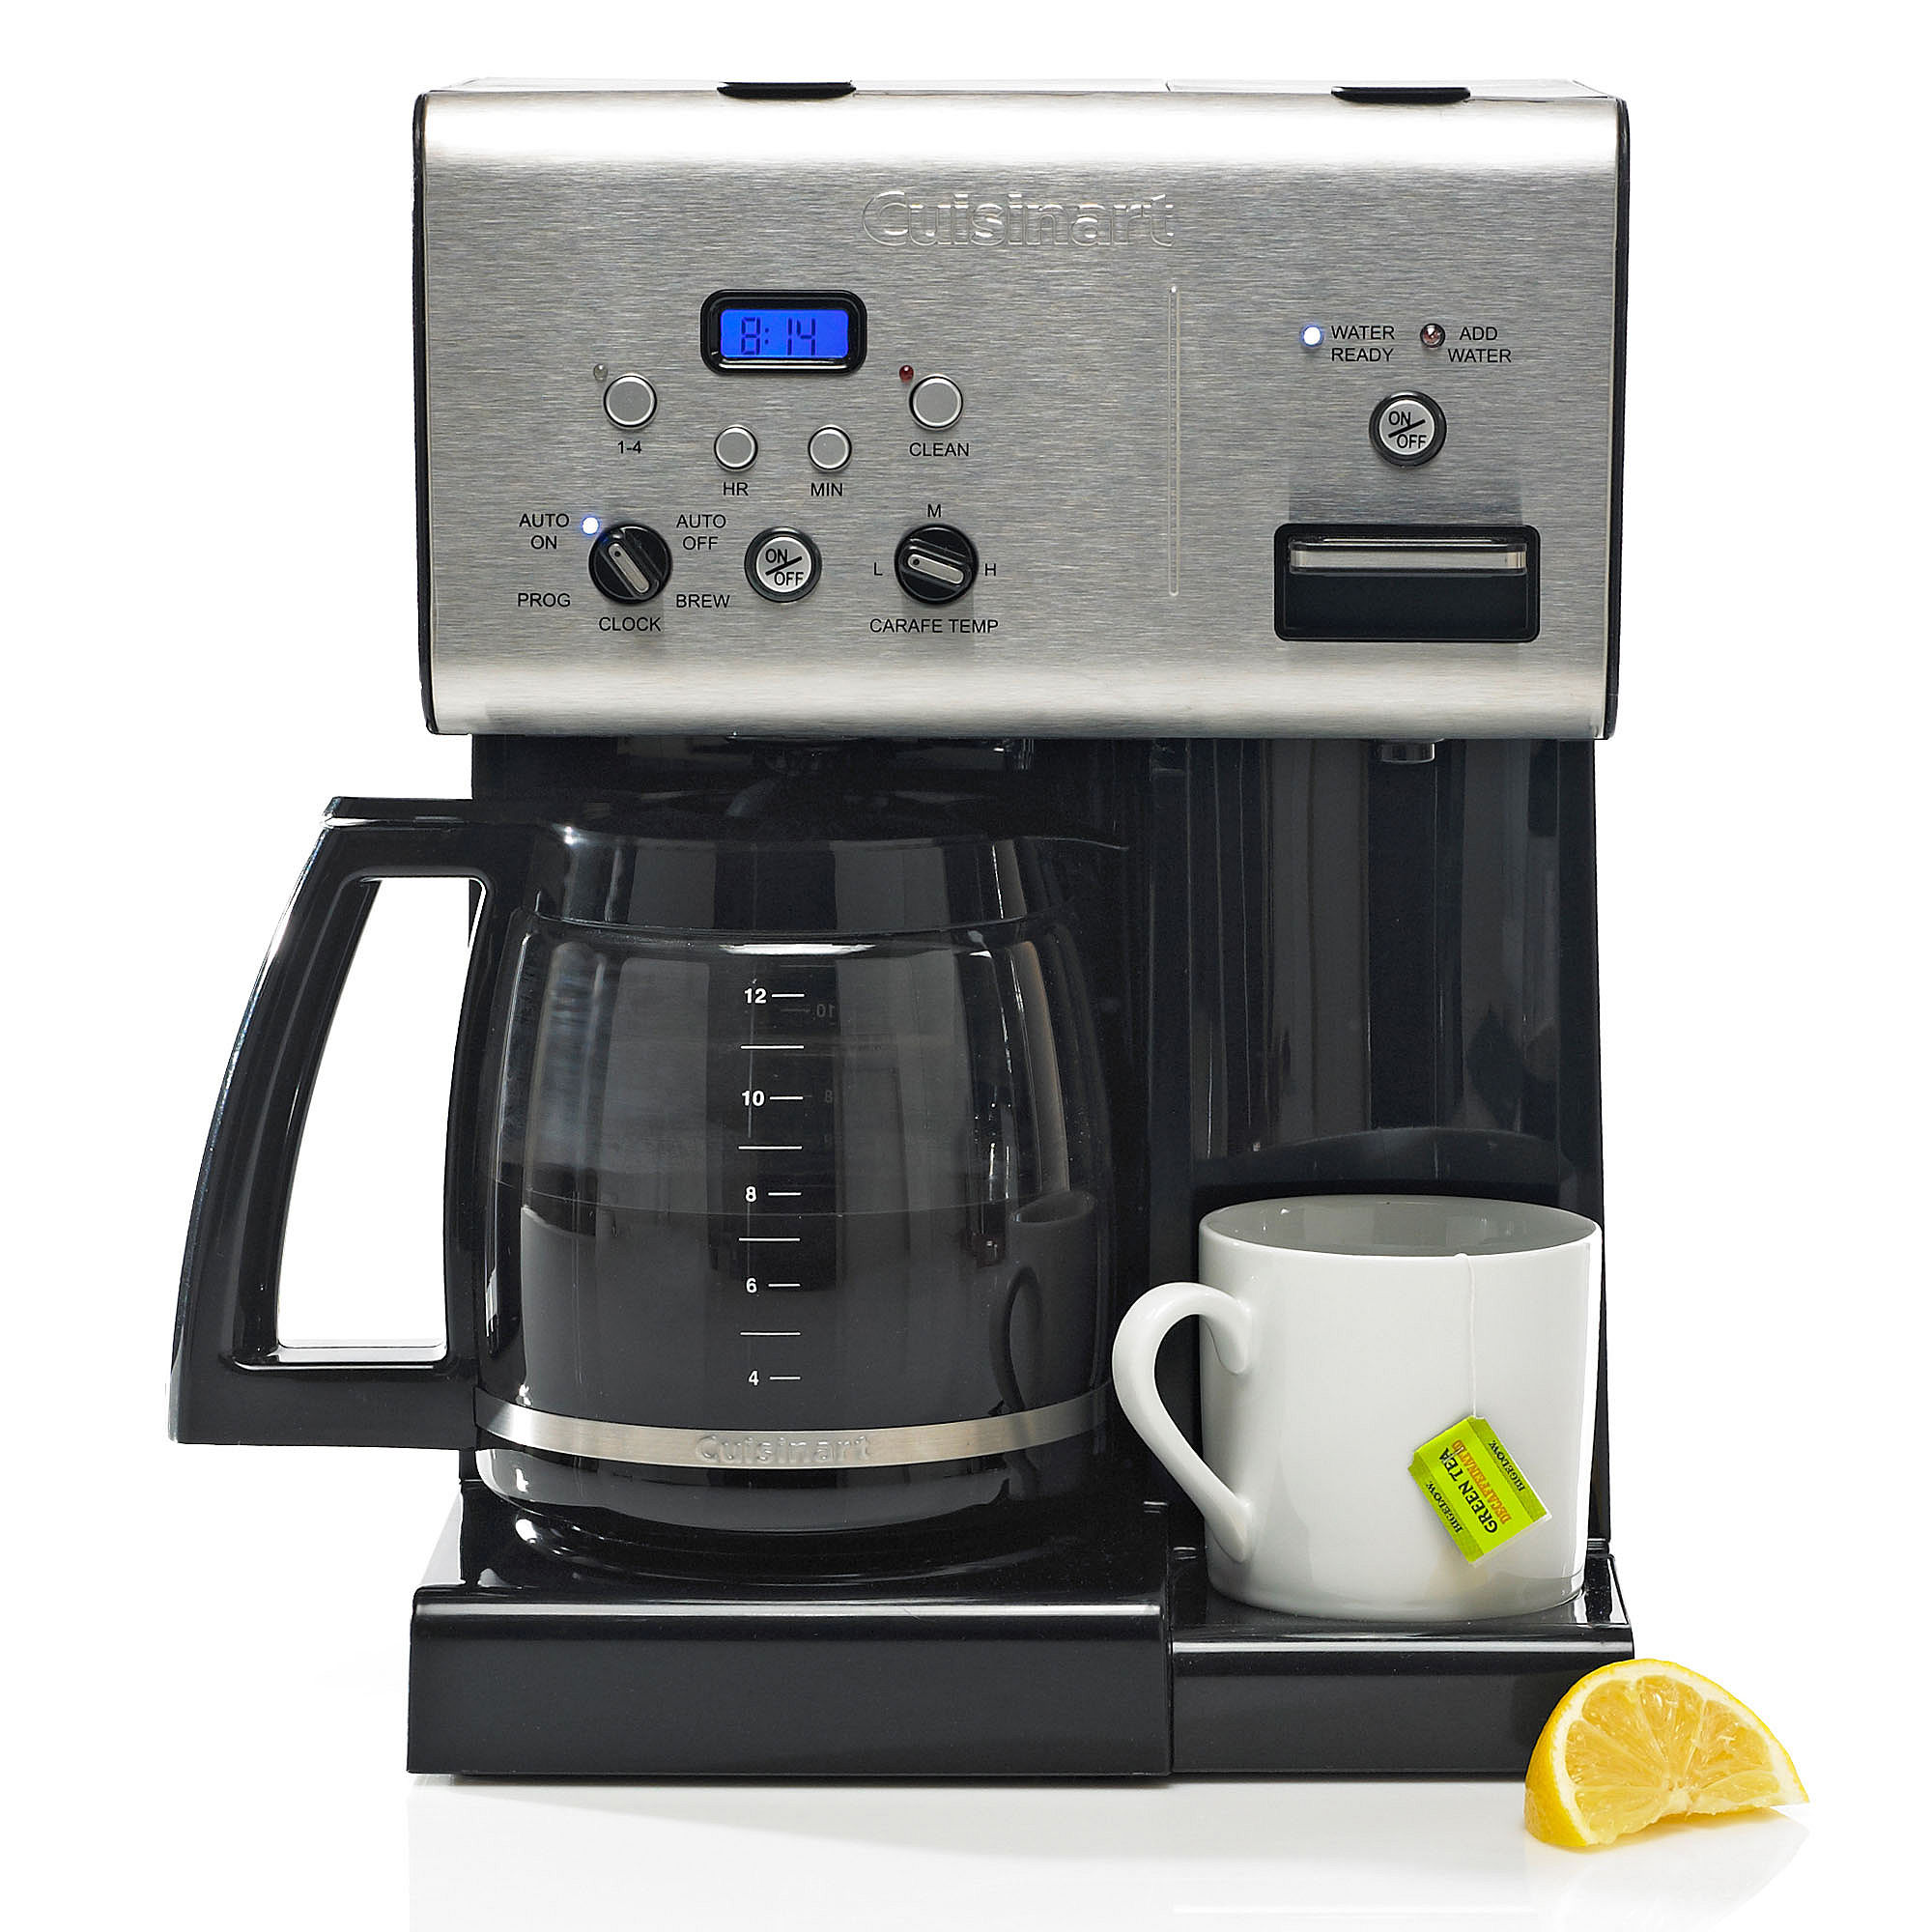 cuisinart chw 12 coffee maker 12 cup programmable with hot water system - Find it at Shopwiki